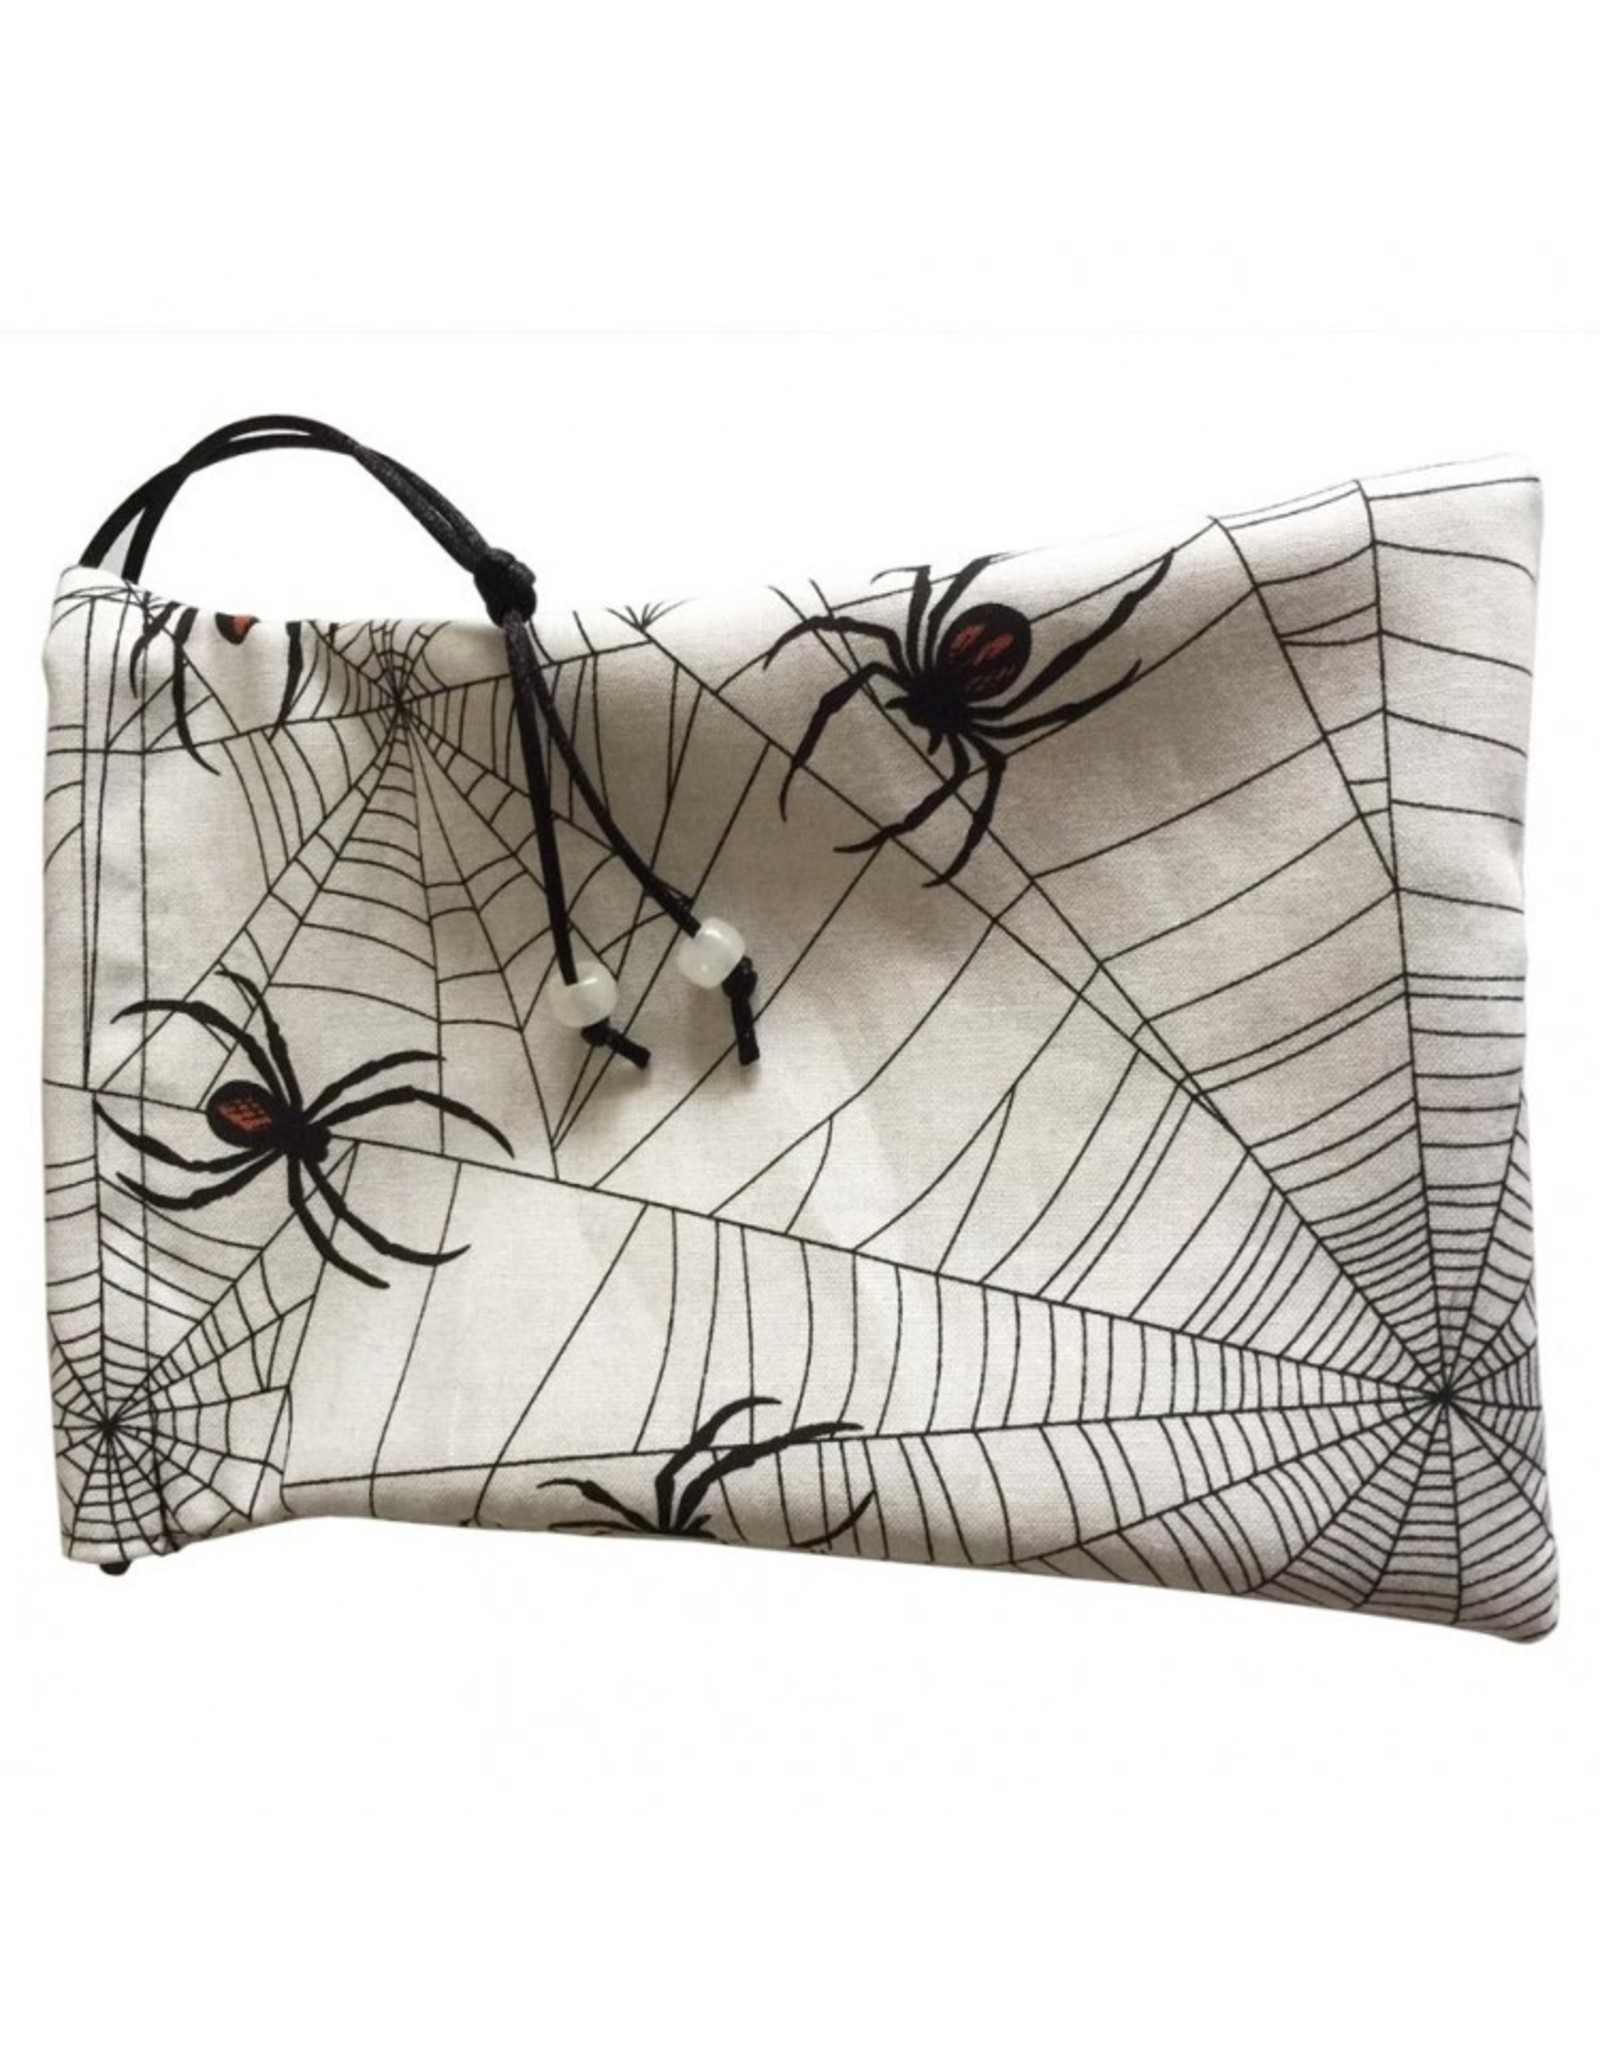 Dice Glow-in-the-Dark Spider bag